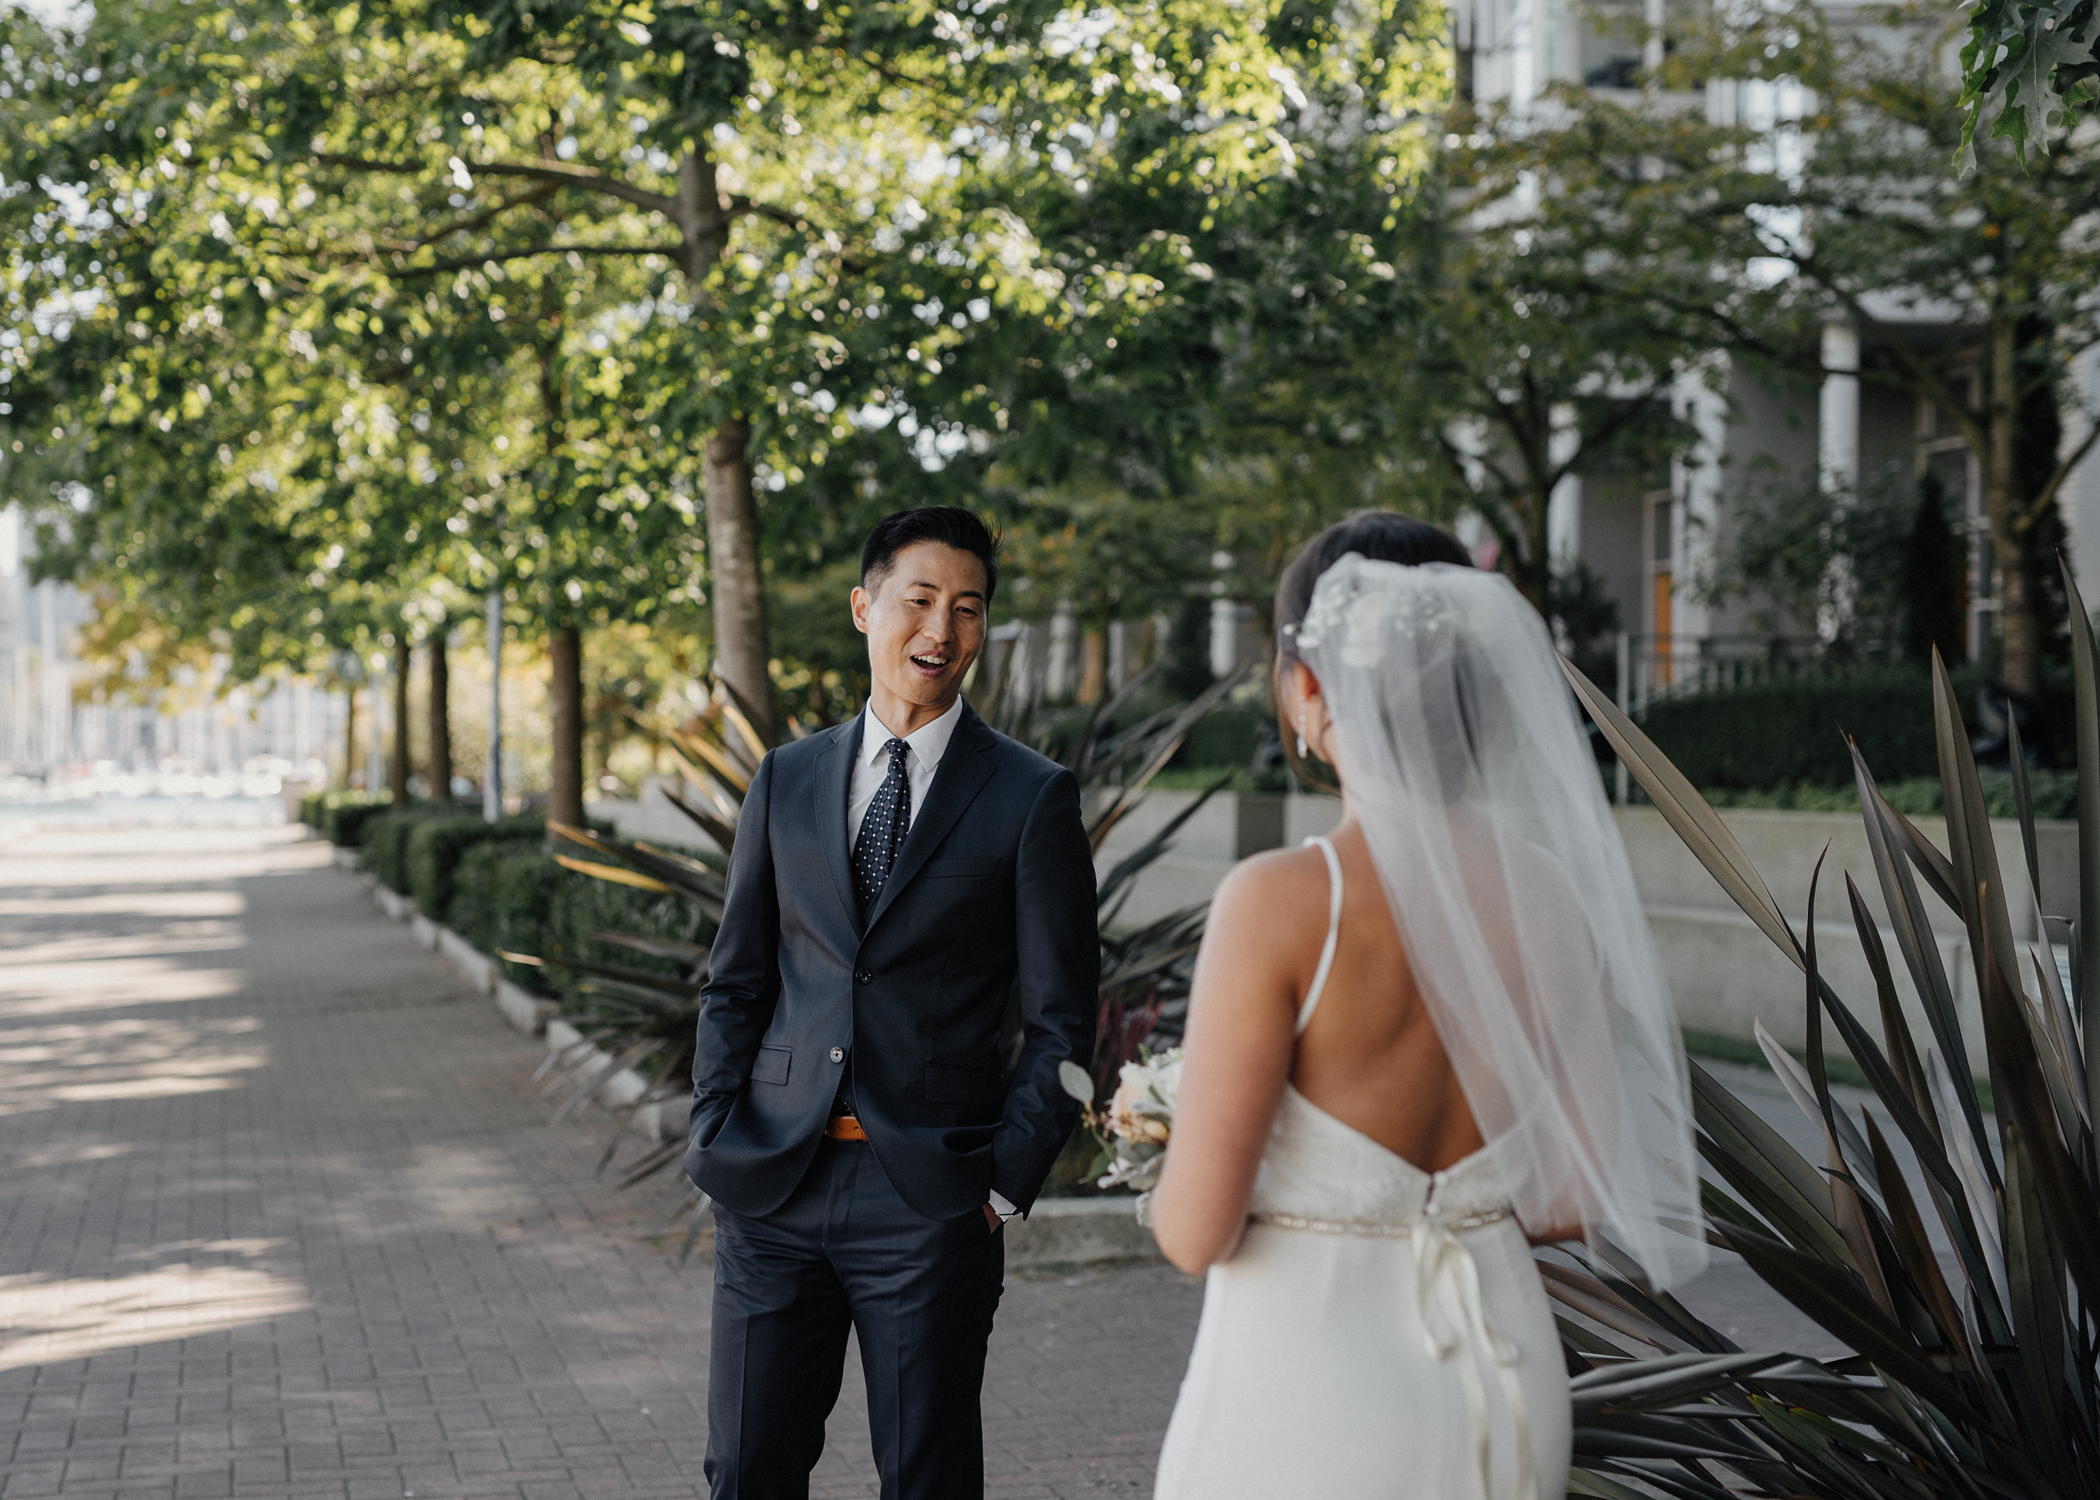 020-kaoverii-silva-az-wedding-vancouver-photography.png